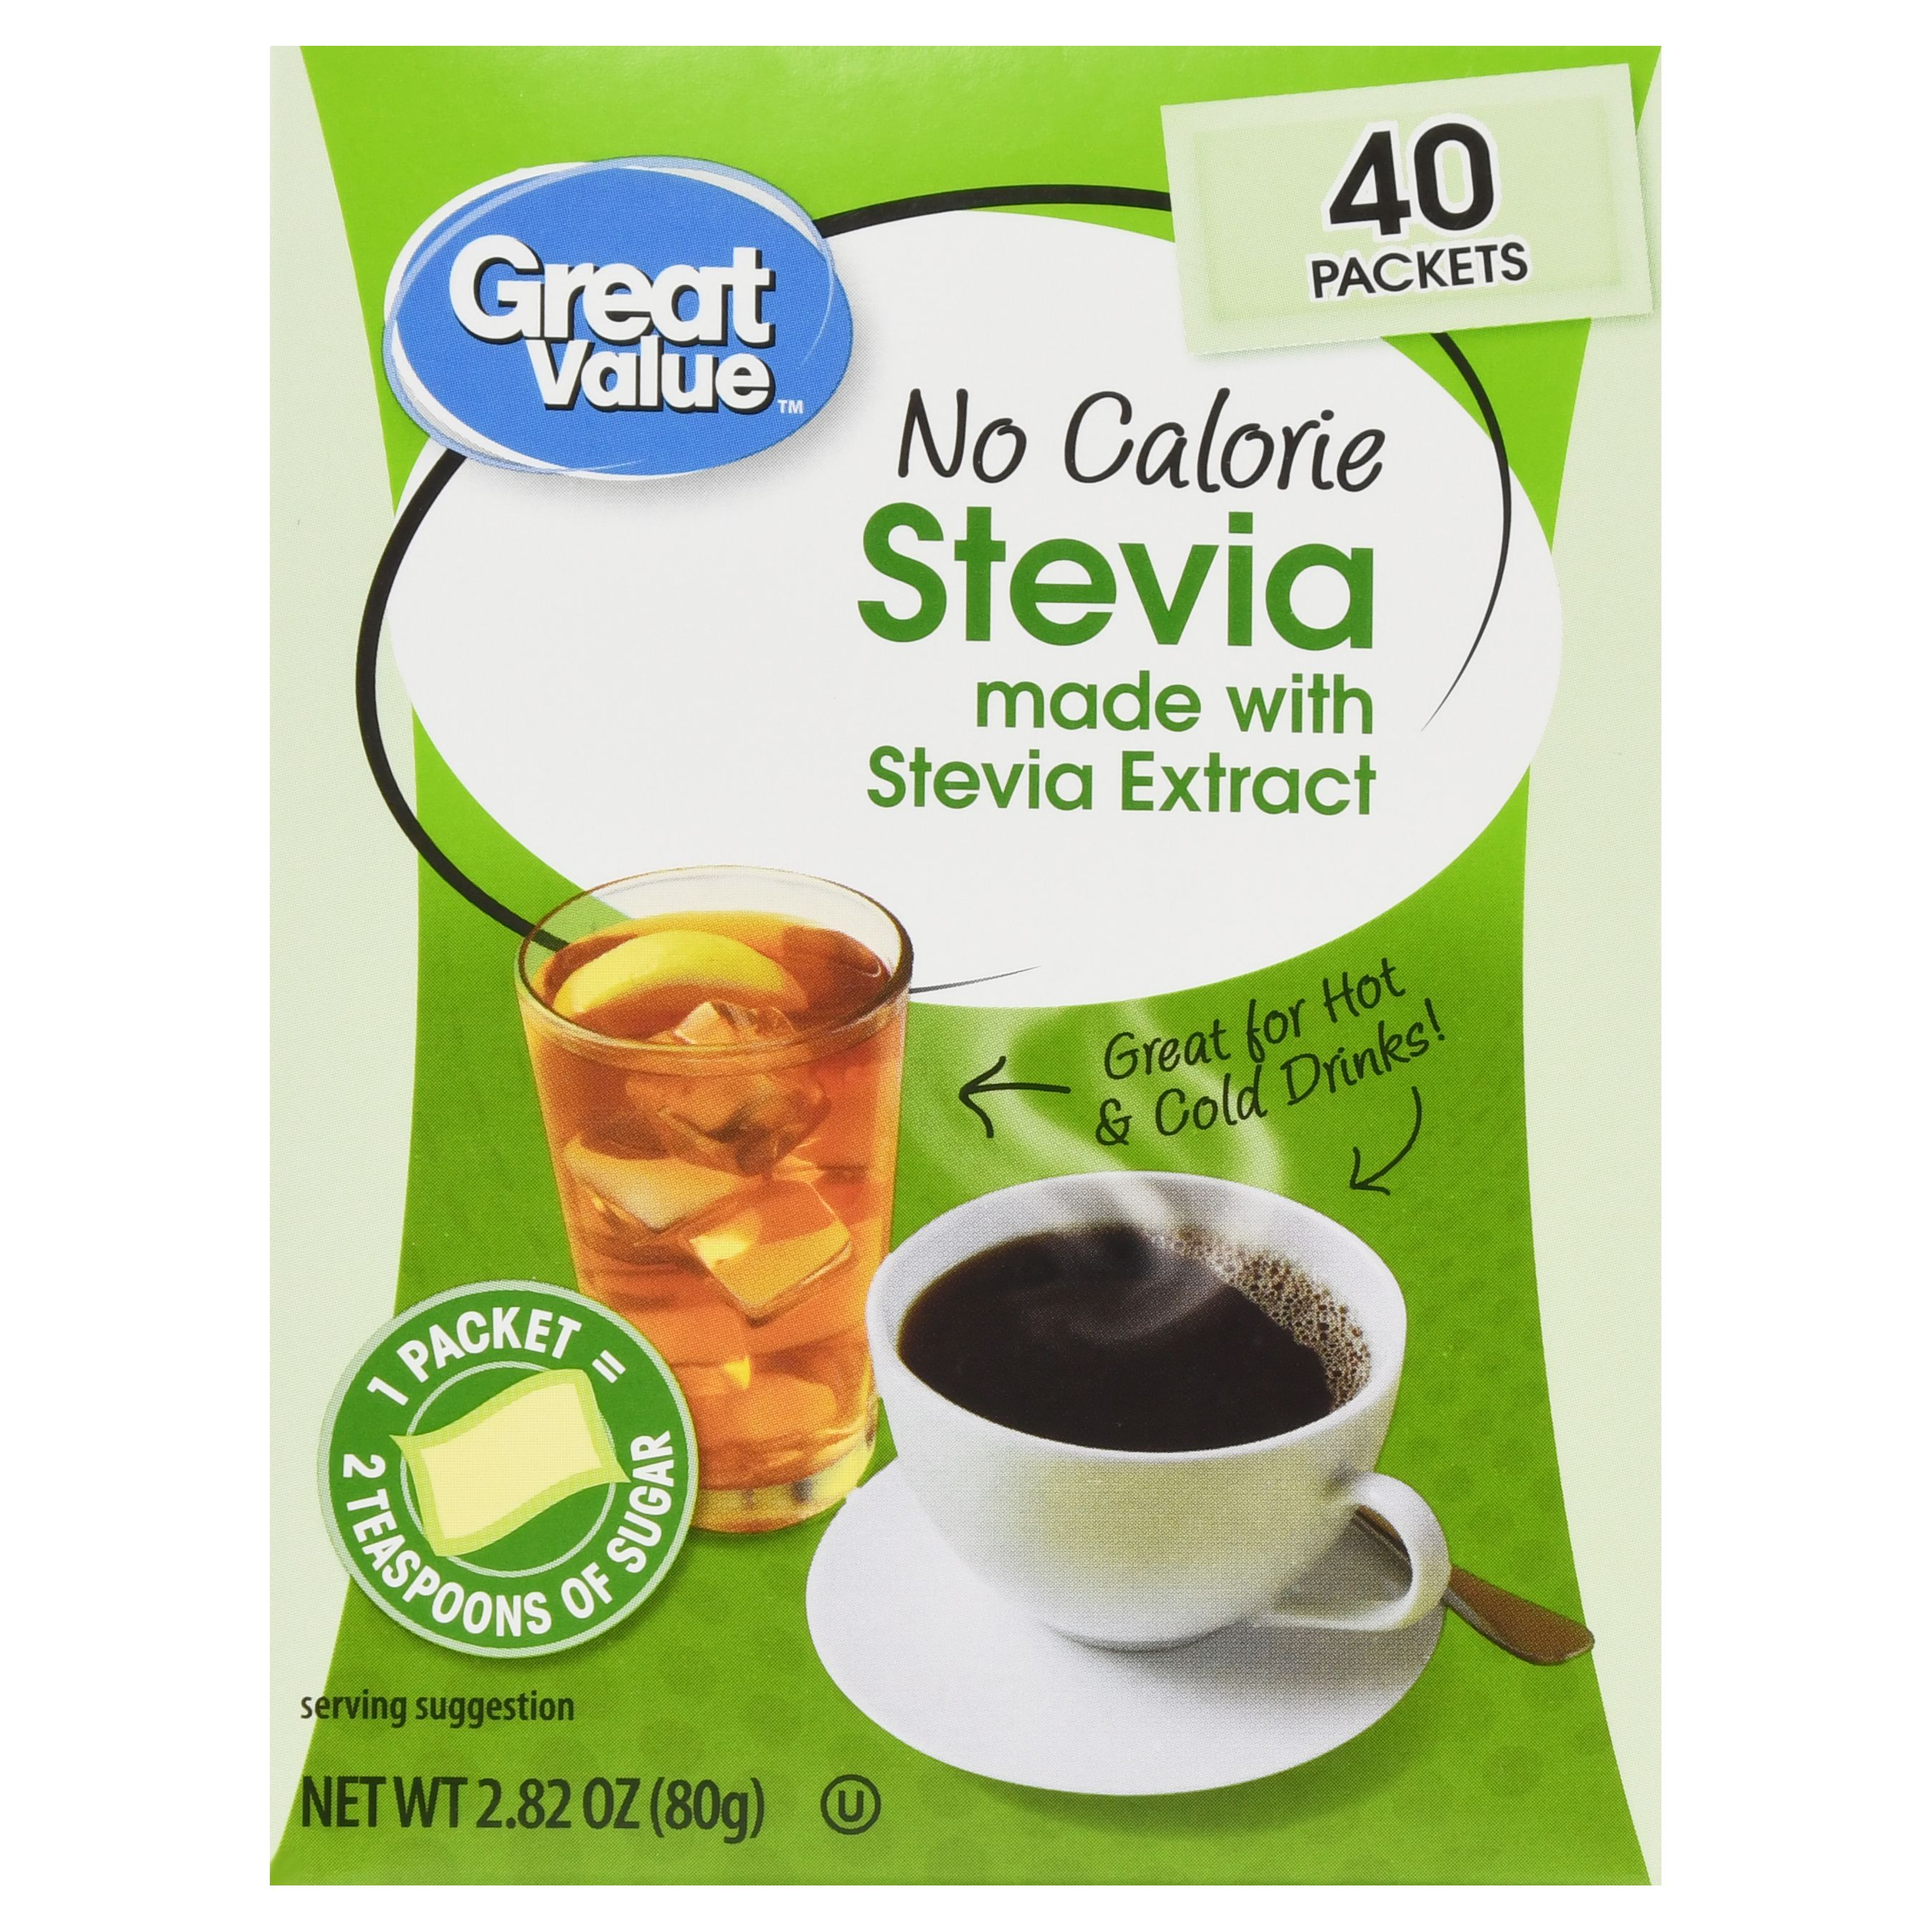 Great Value No Calorie Stevia Sweetener Packets, 40 Count